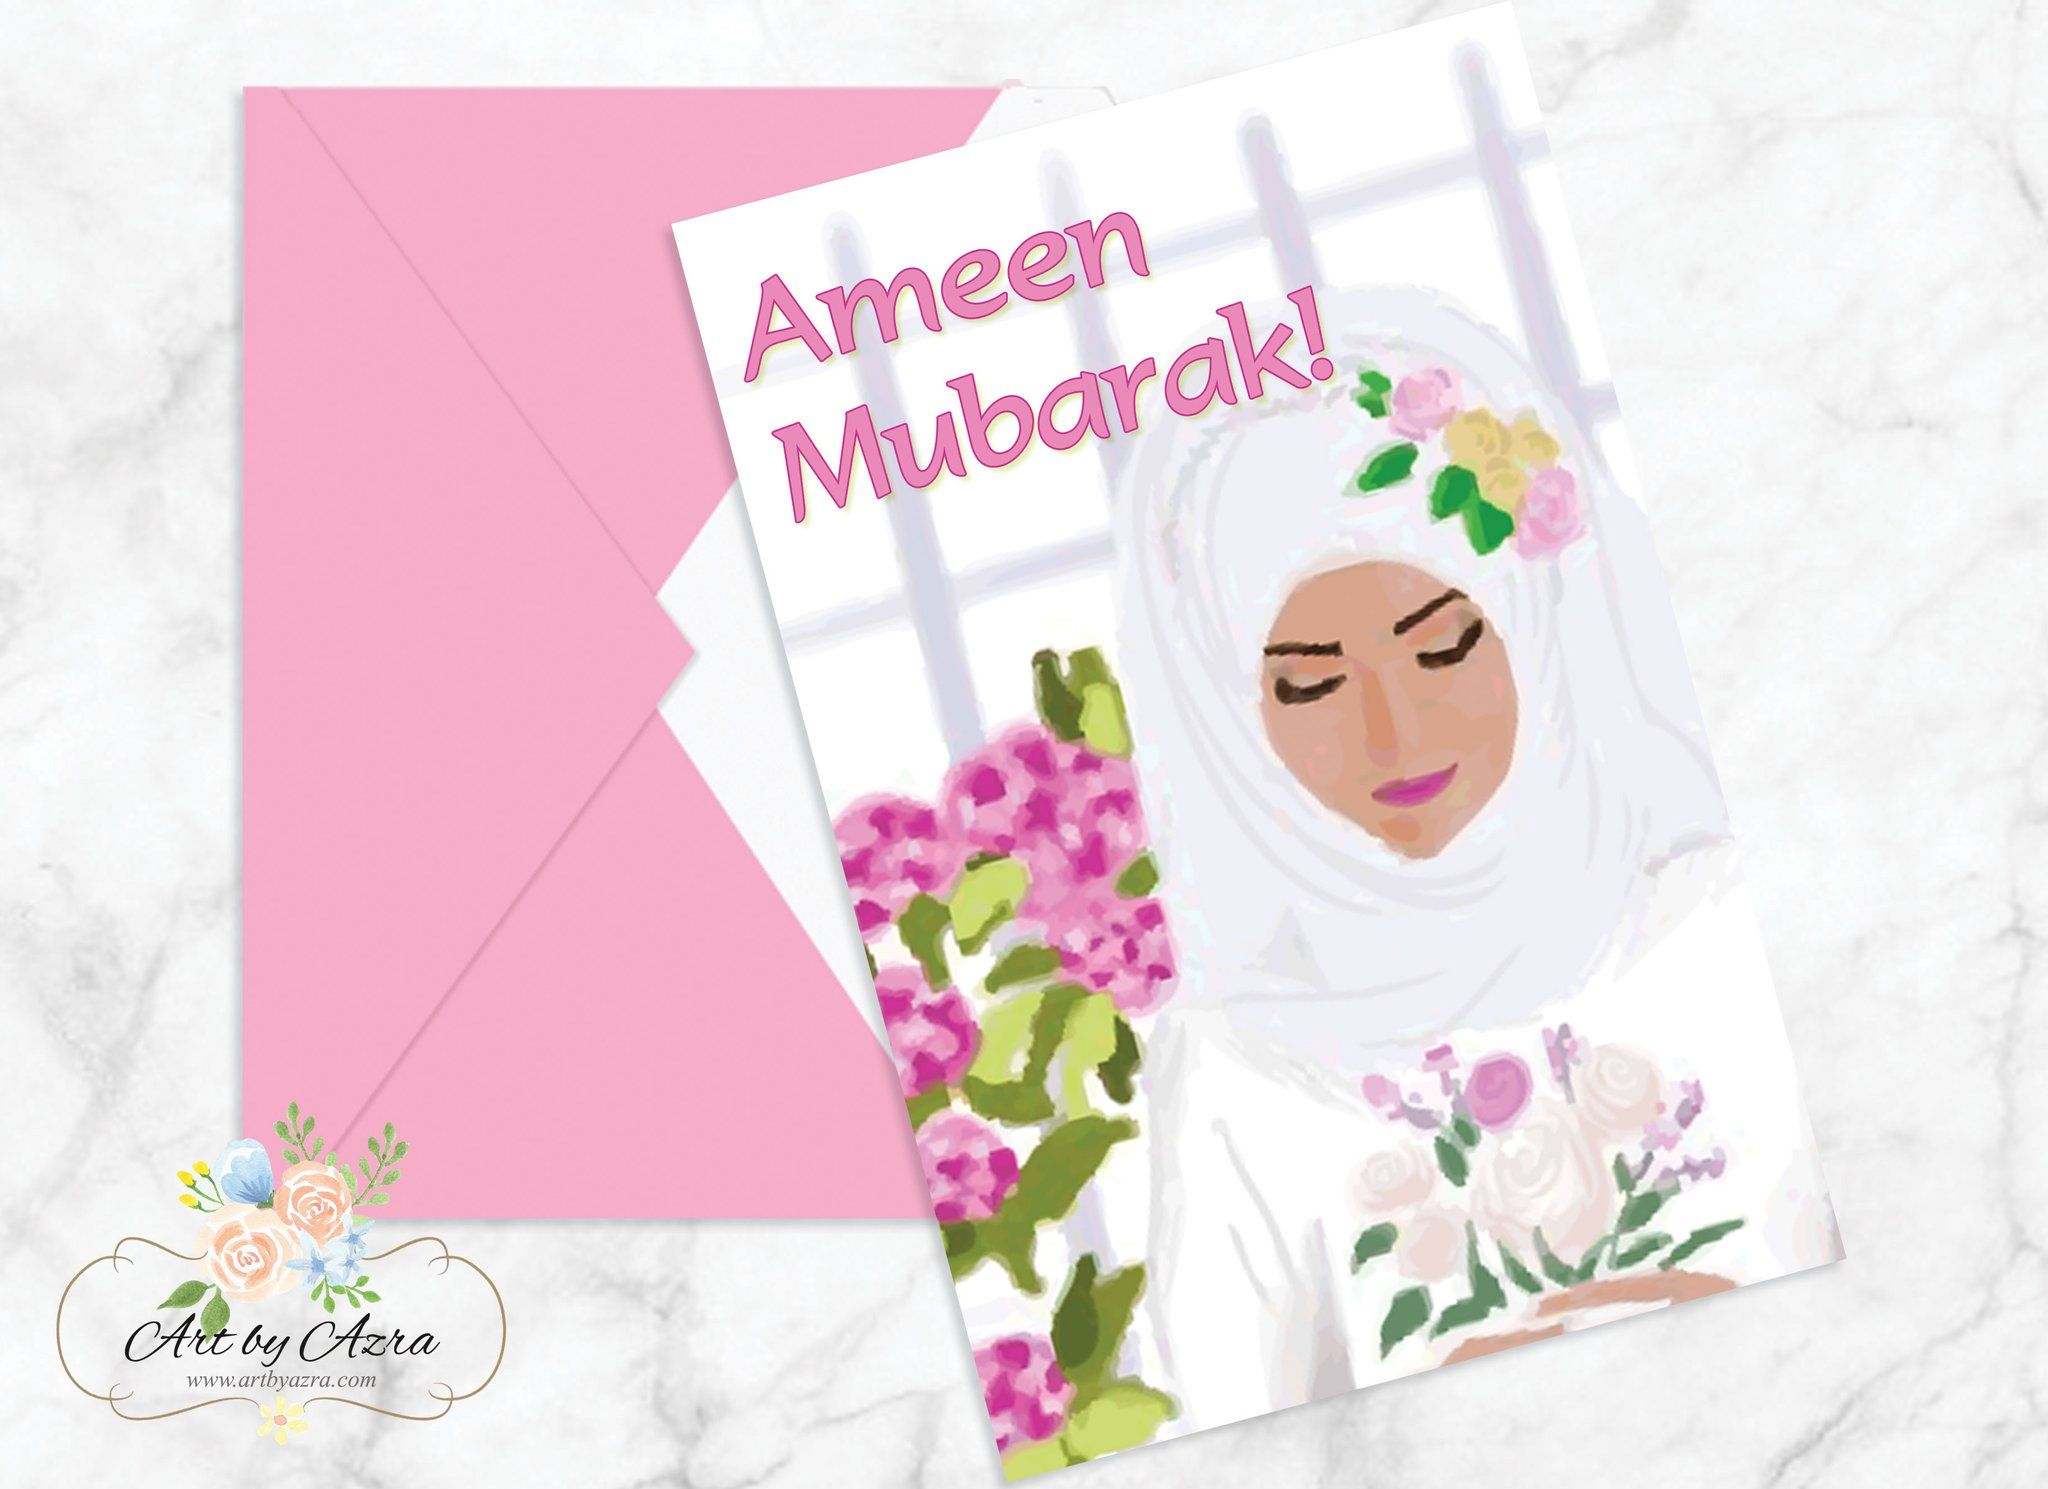 Wedding greeting cards This design read Ameen mubarak Perfect to